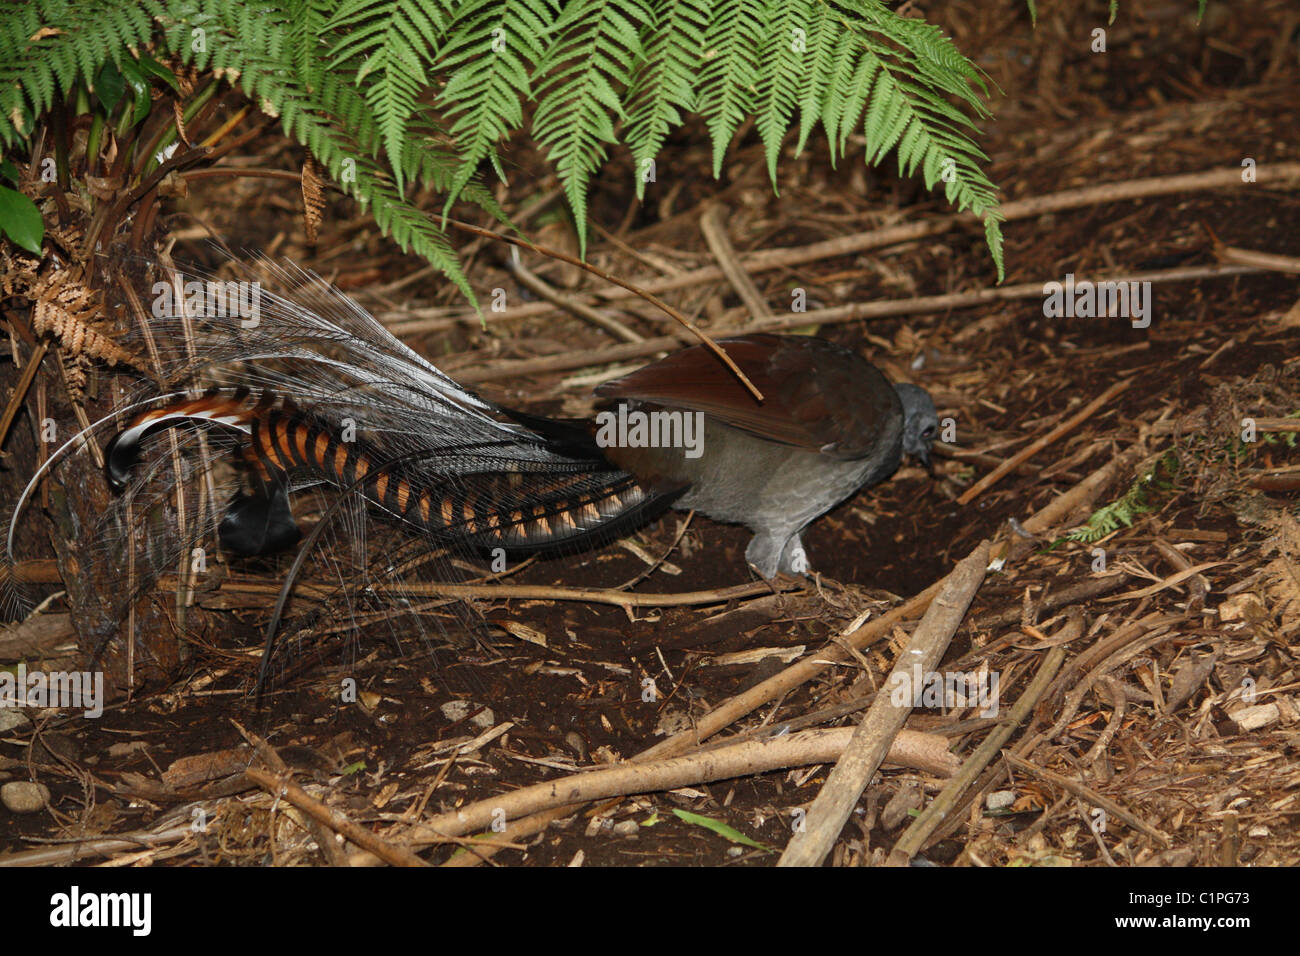 Lyre bird scratching for food in the undergrowth - Stock Image